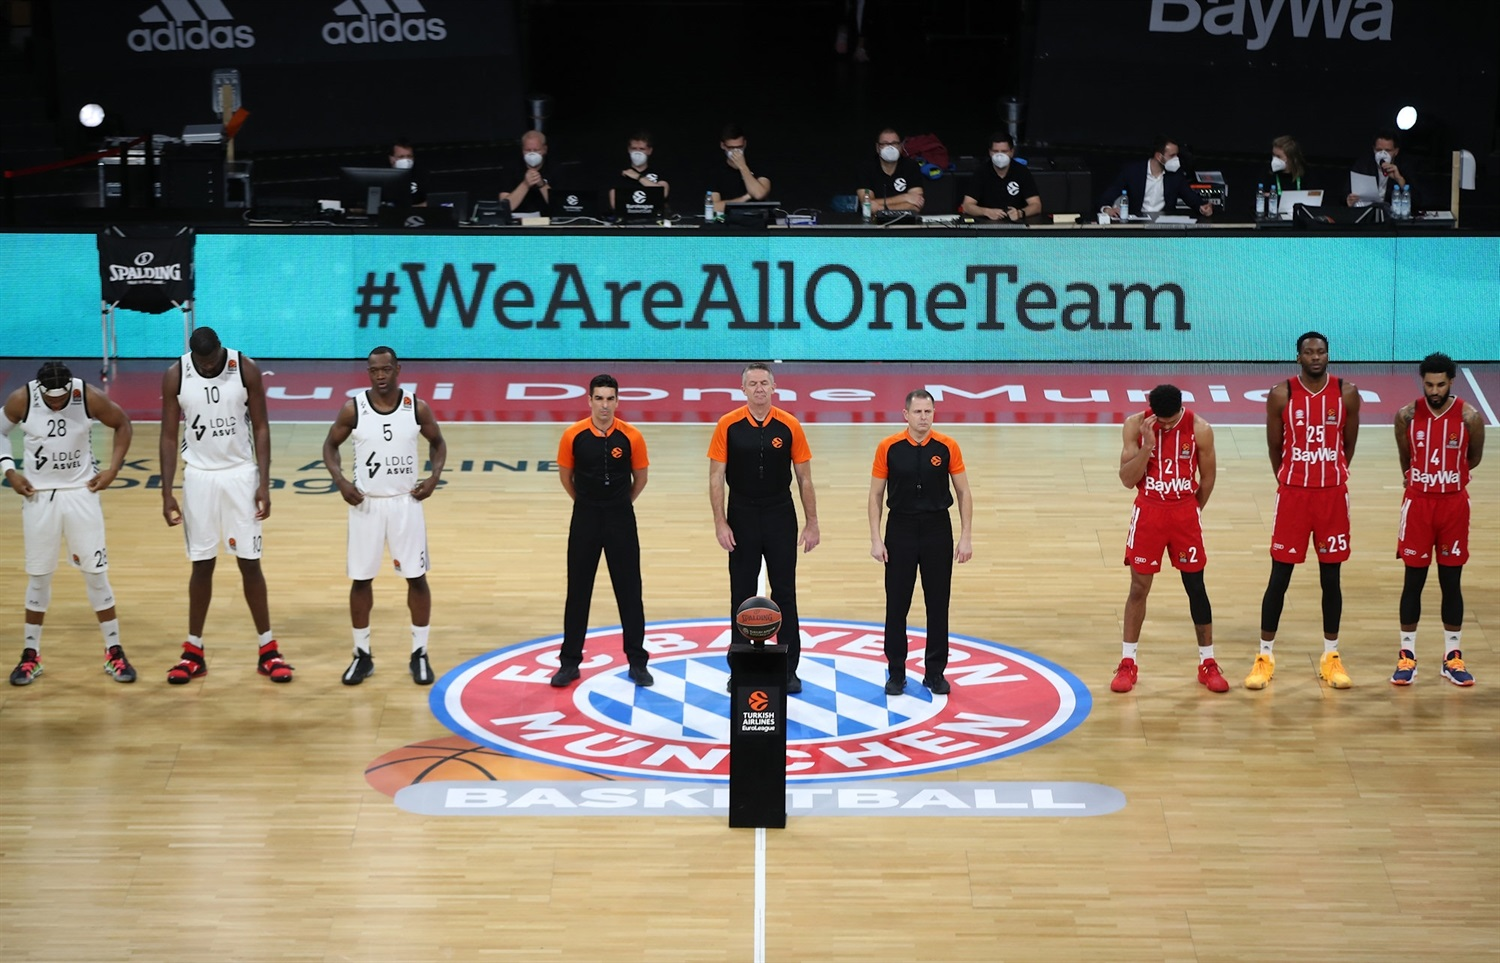 We Are All One Team - Bayern vs. ASVEL - EB20